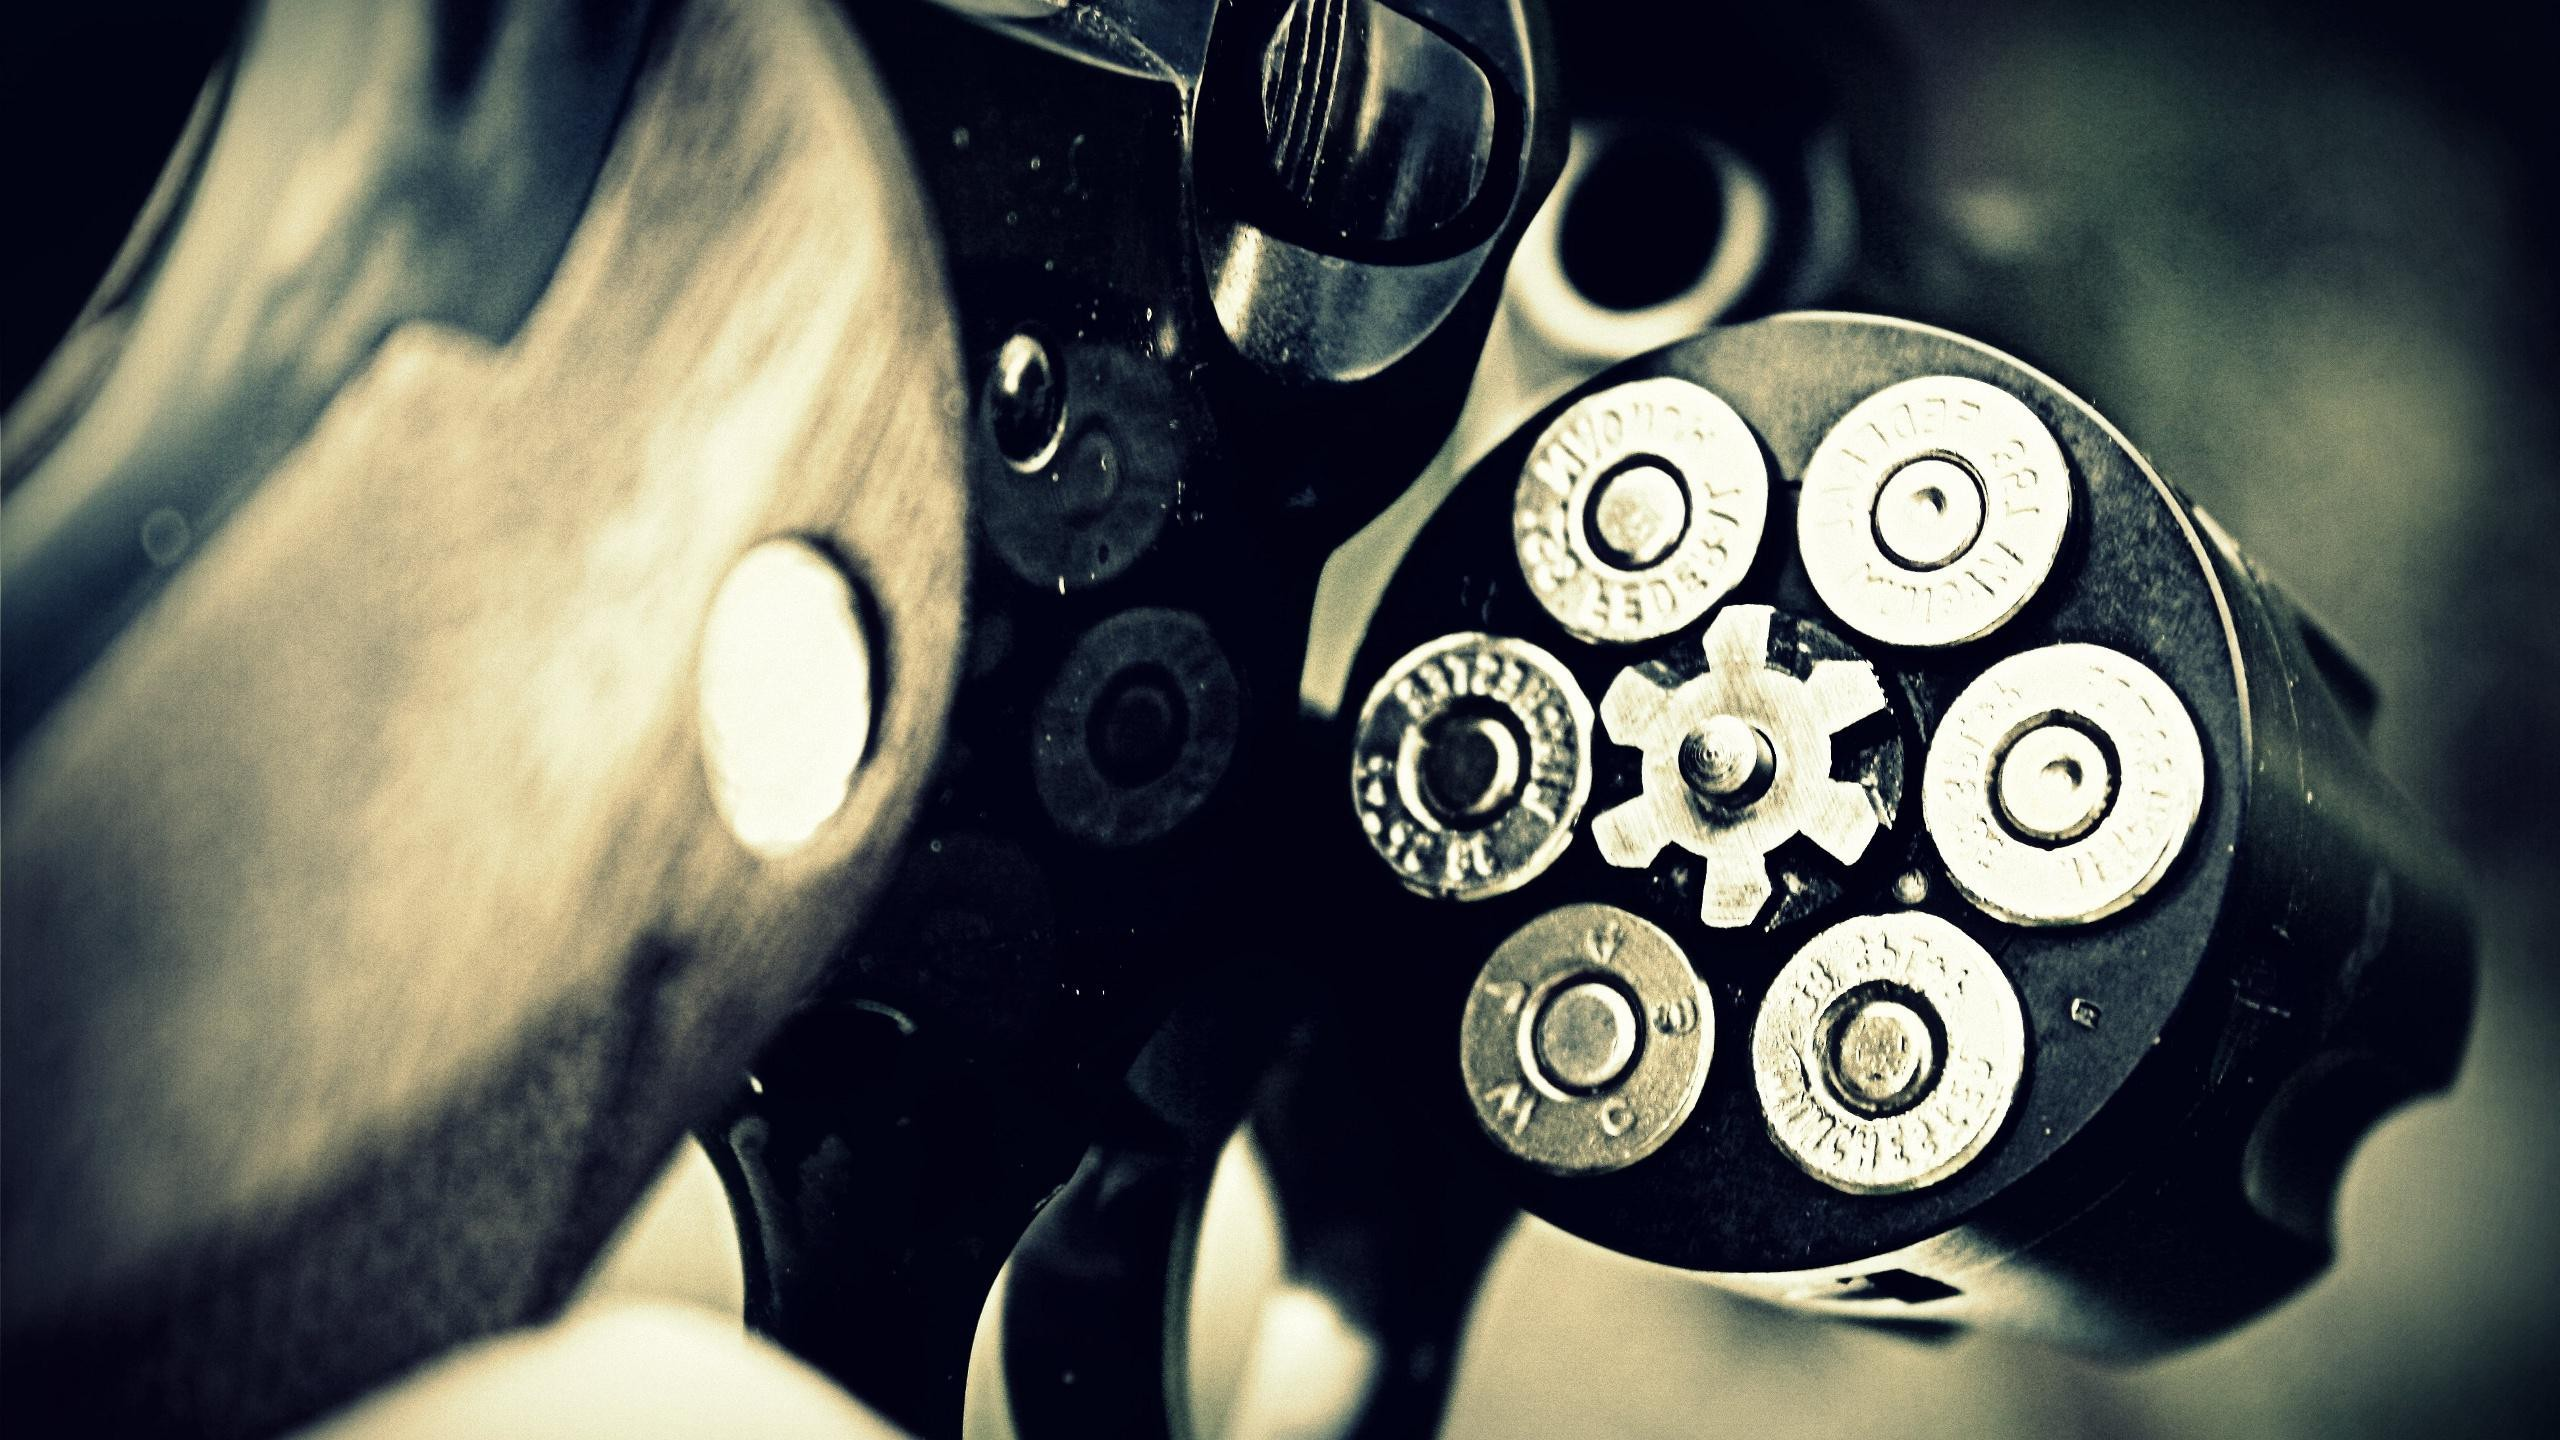 2560x1440 Revolver HD Wallpapers Desktop Computer